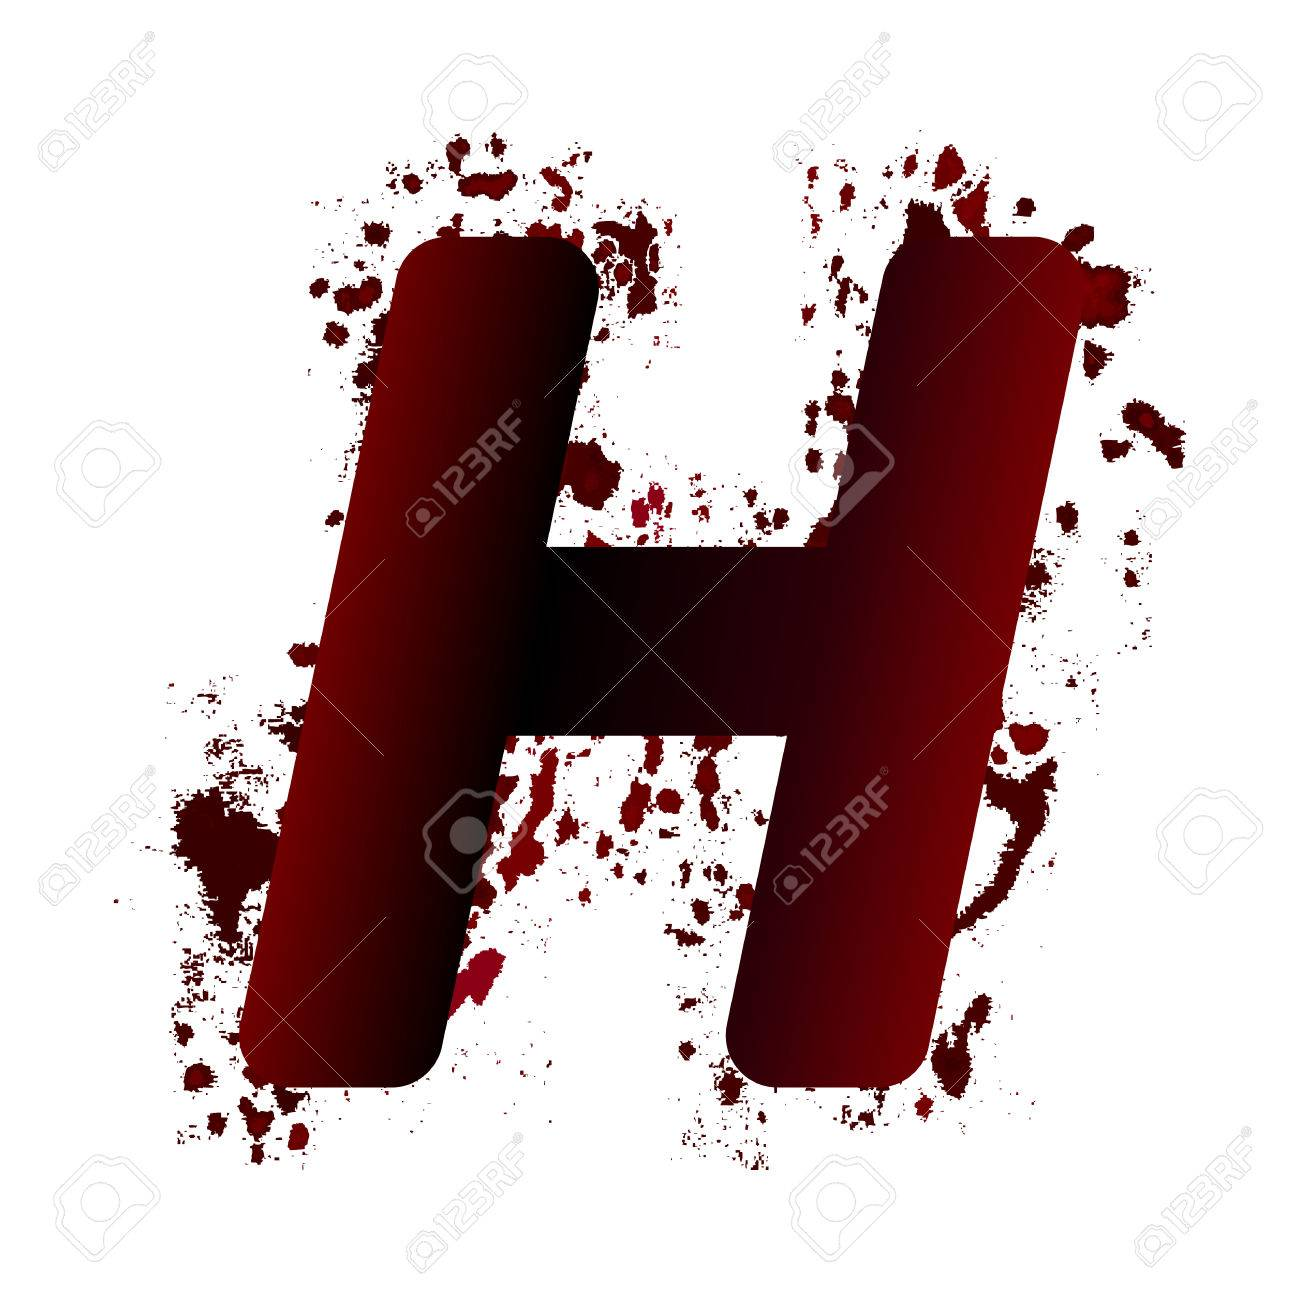 H Letter Images.Dirty Bloody Letter H With Spots Grunge Alphabet Scary Letters